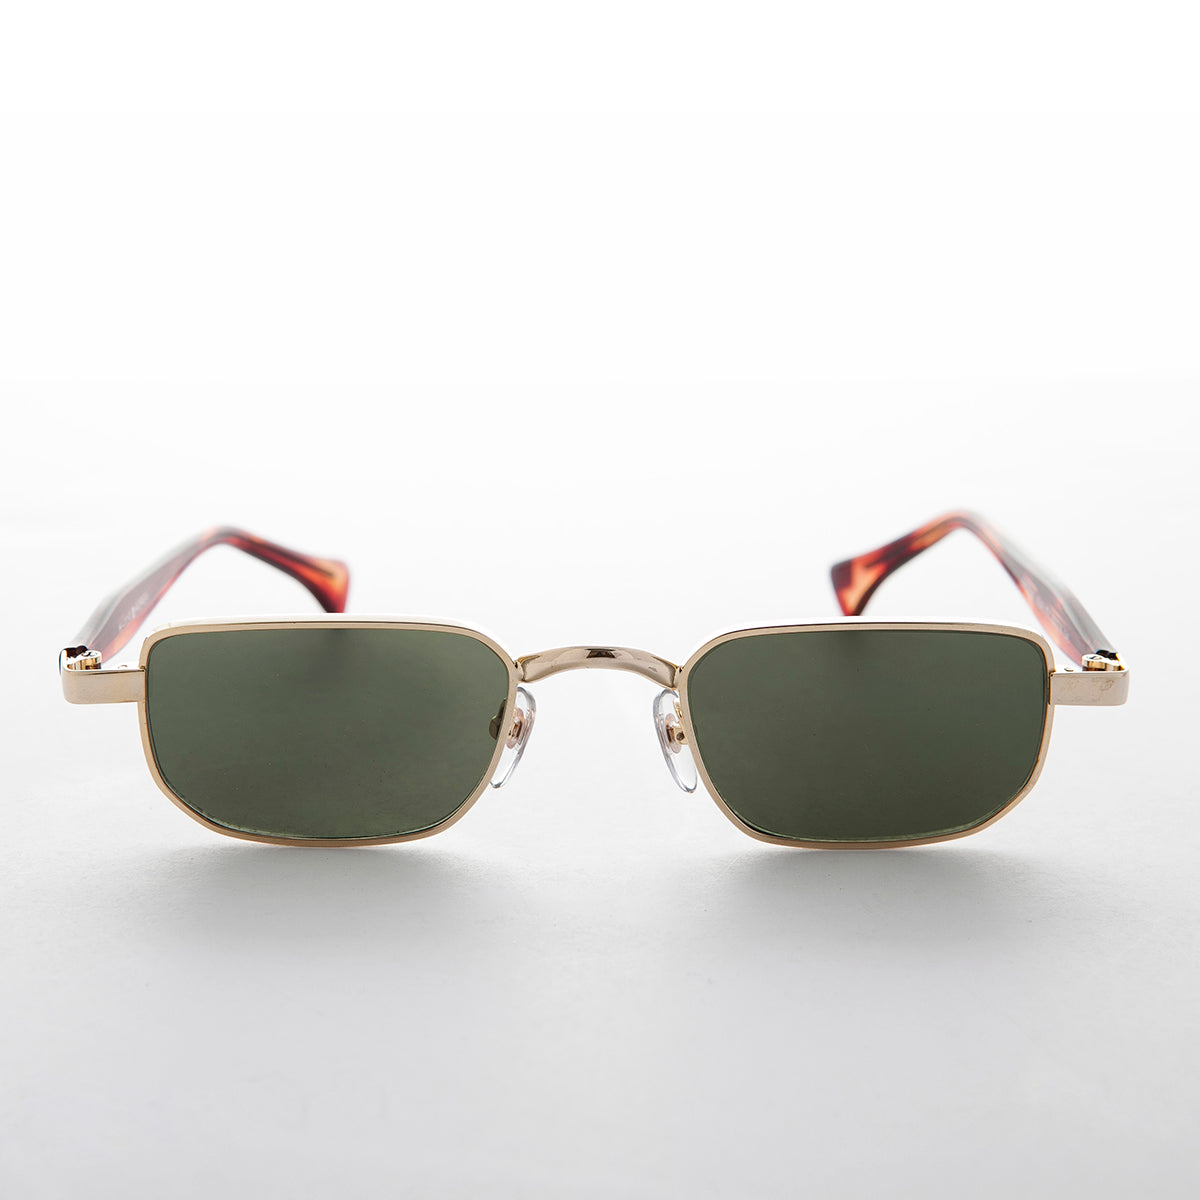 Wide Skinny Rectangular Vintage Optical Quality Sunglass